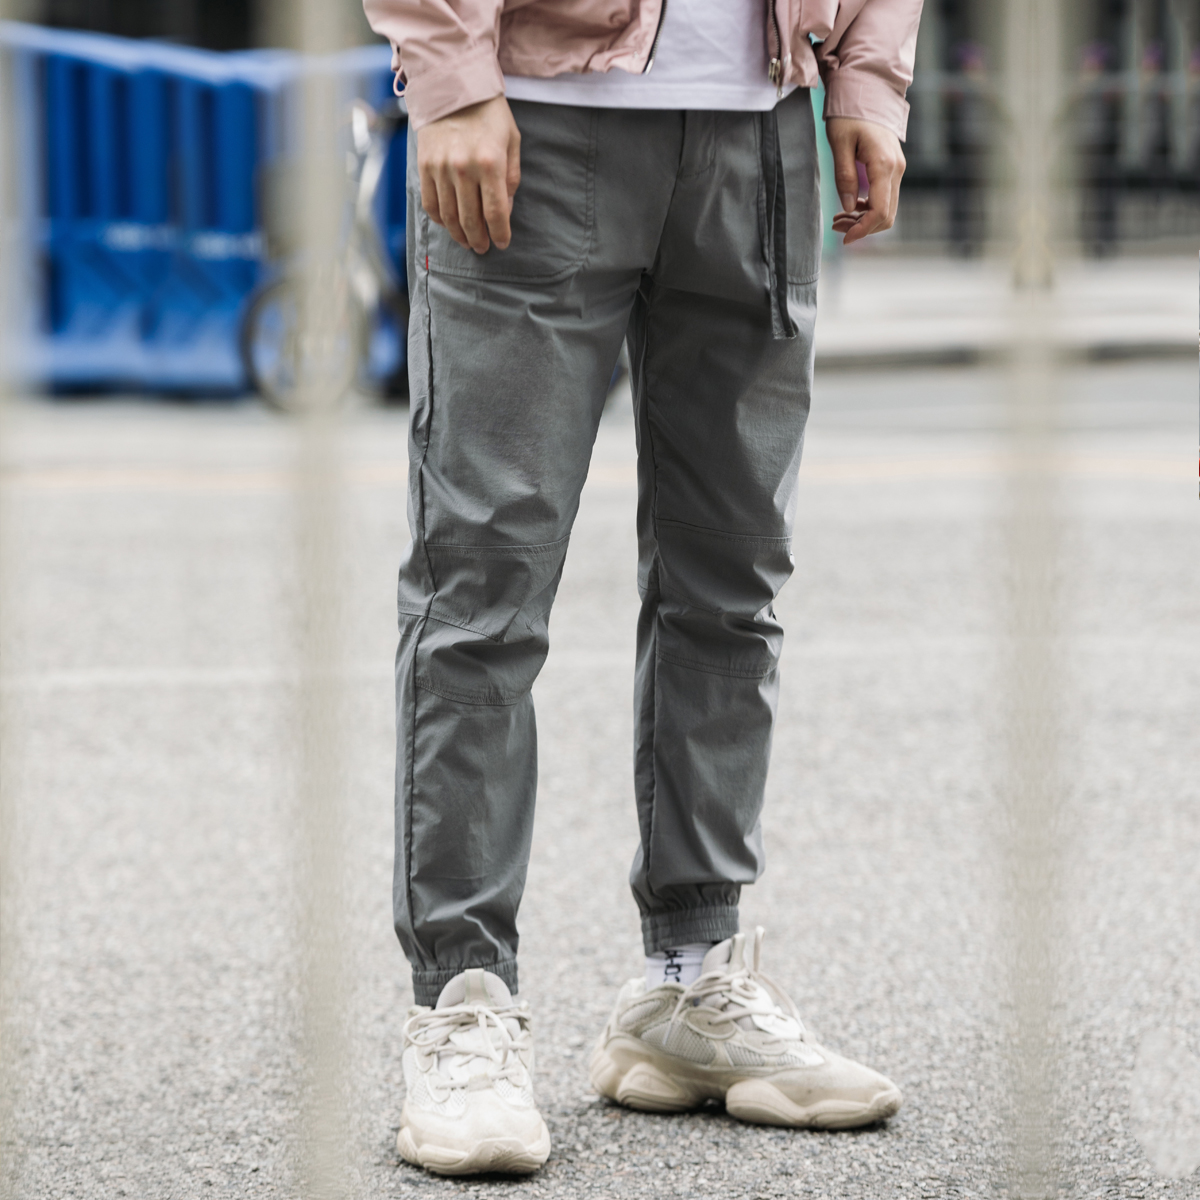 The Best Types Of Pants For Men's Casual Style